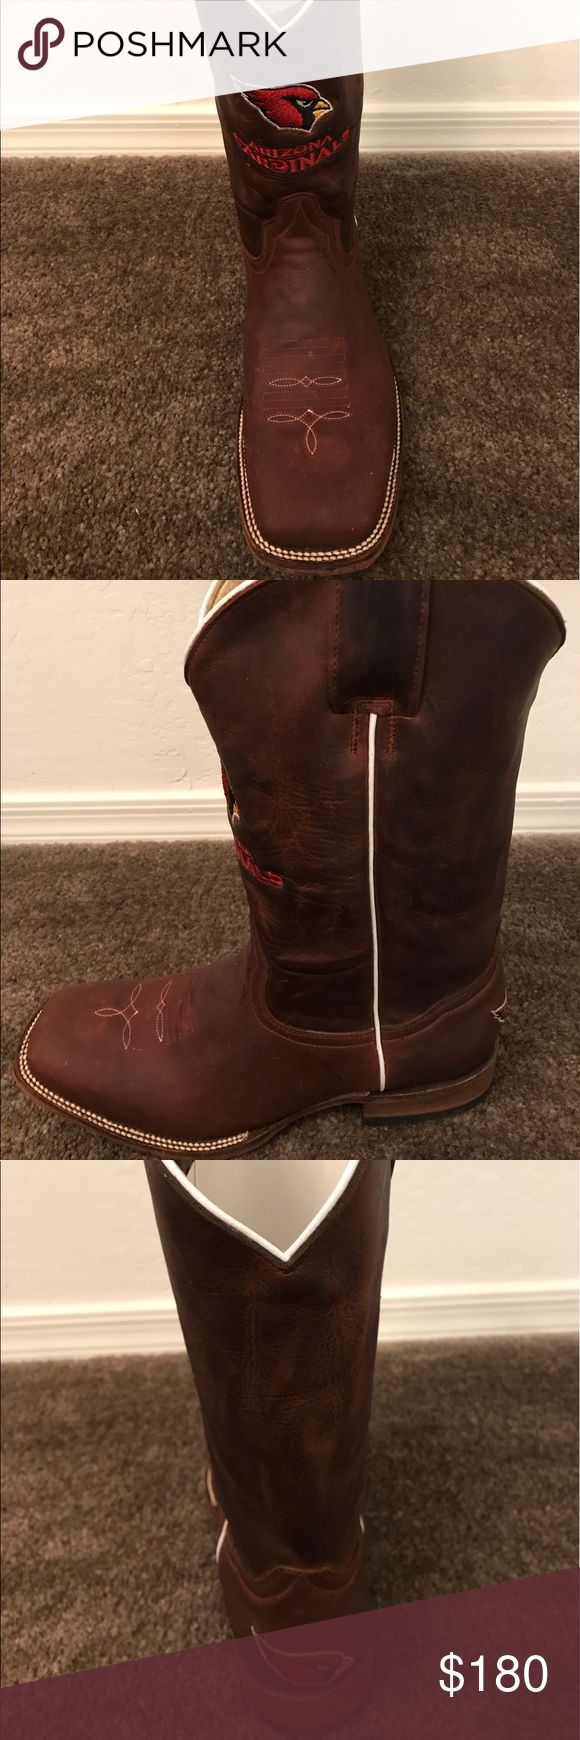 Arizona Cardinals NFL Boots Handcrafted old pro leather boots of the Arizona Cardinals. Shoes Cowboy & Western Boots